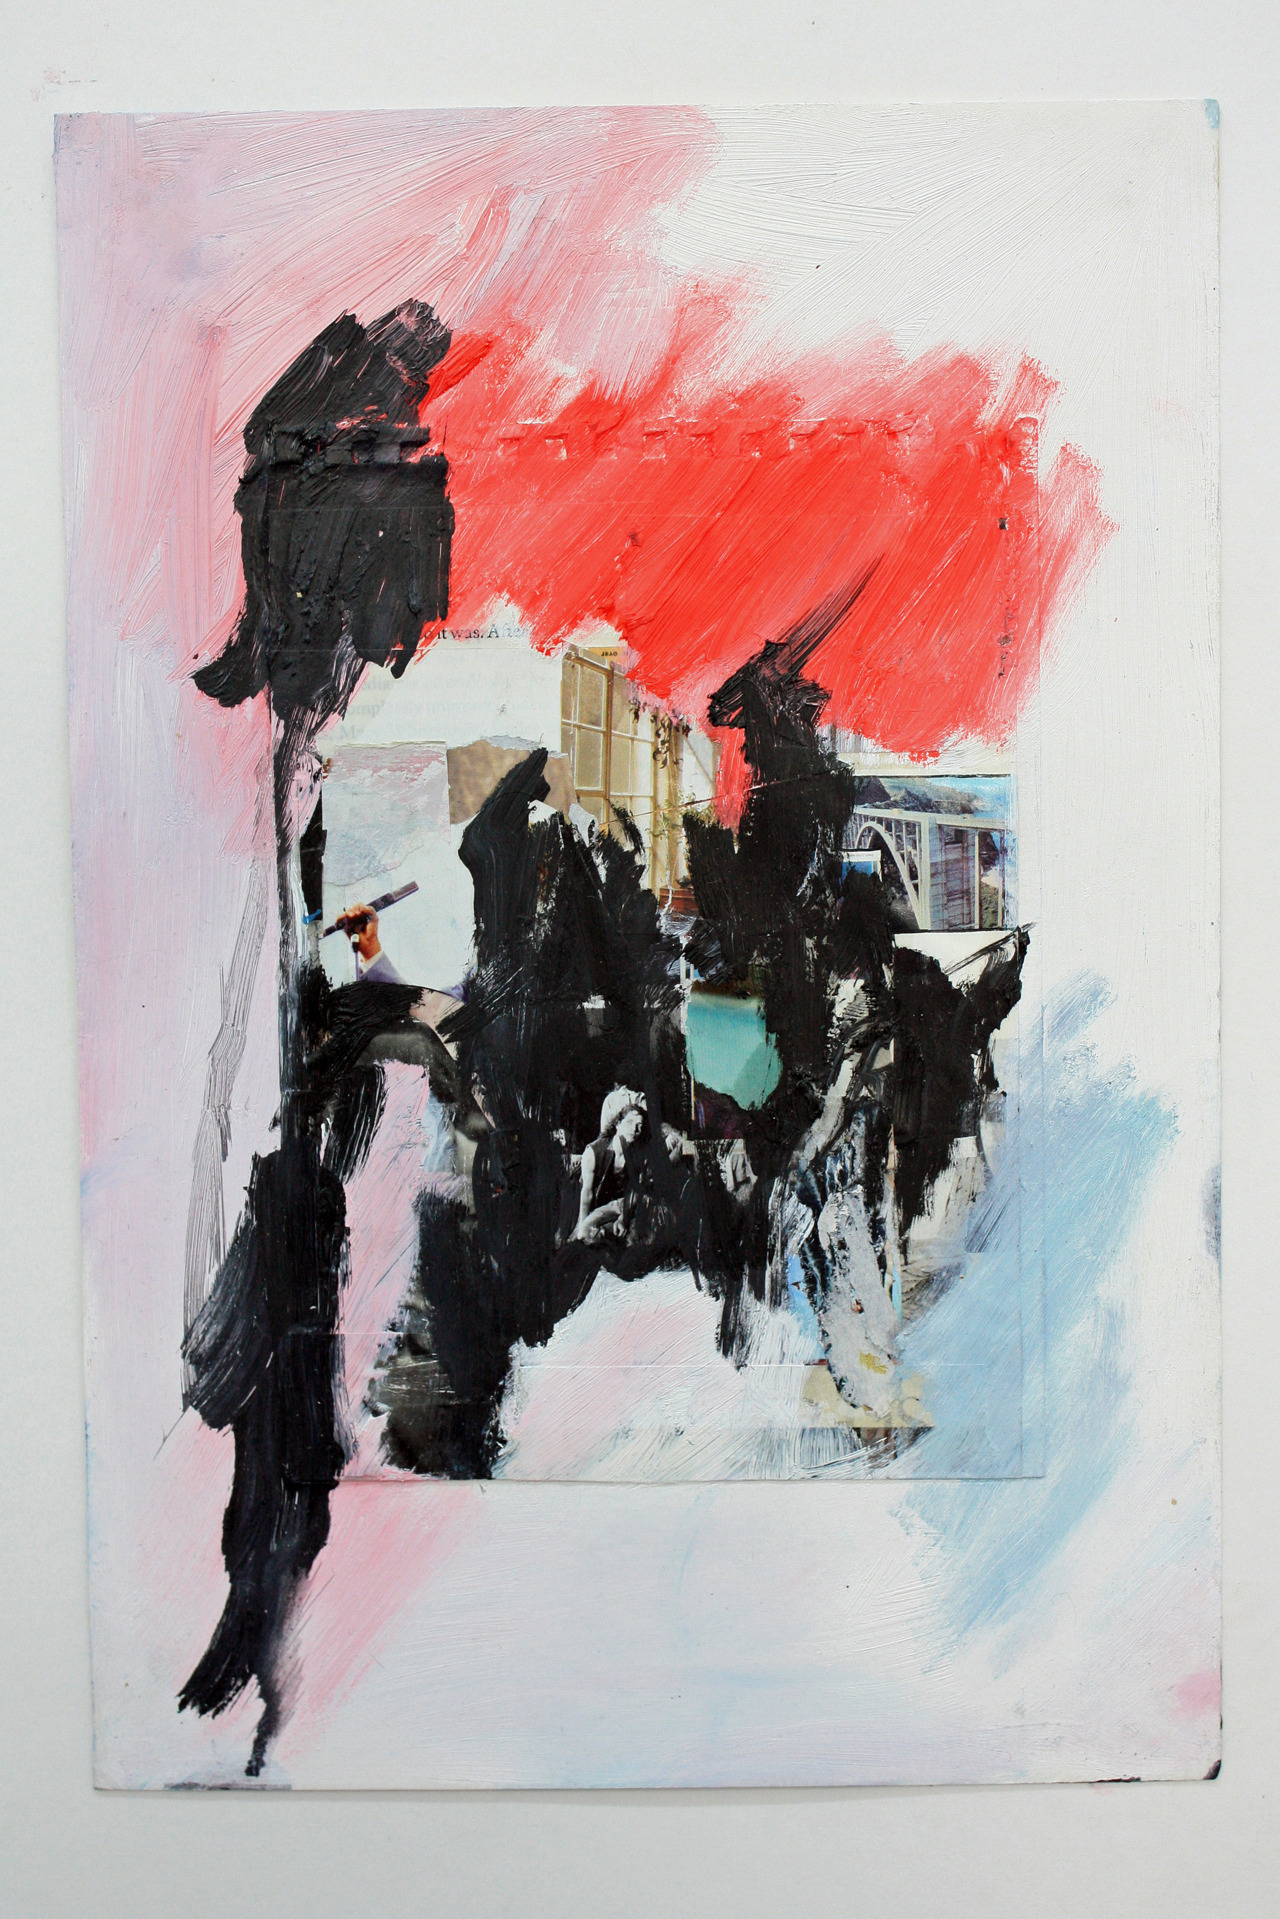 greensacredlode:  Mixed media on paper 2012 Olivia Foster, 18, London